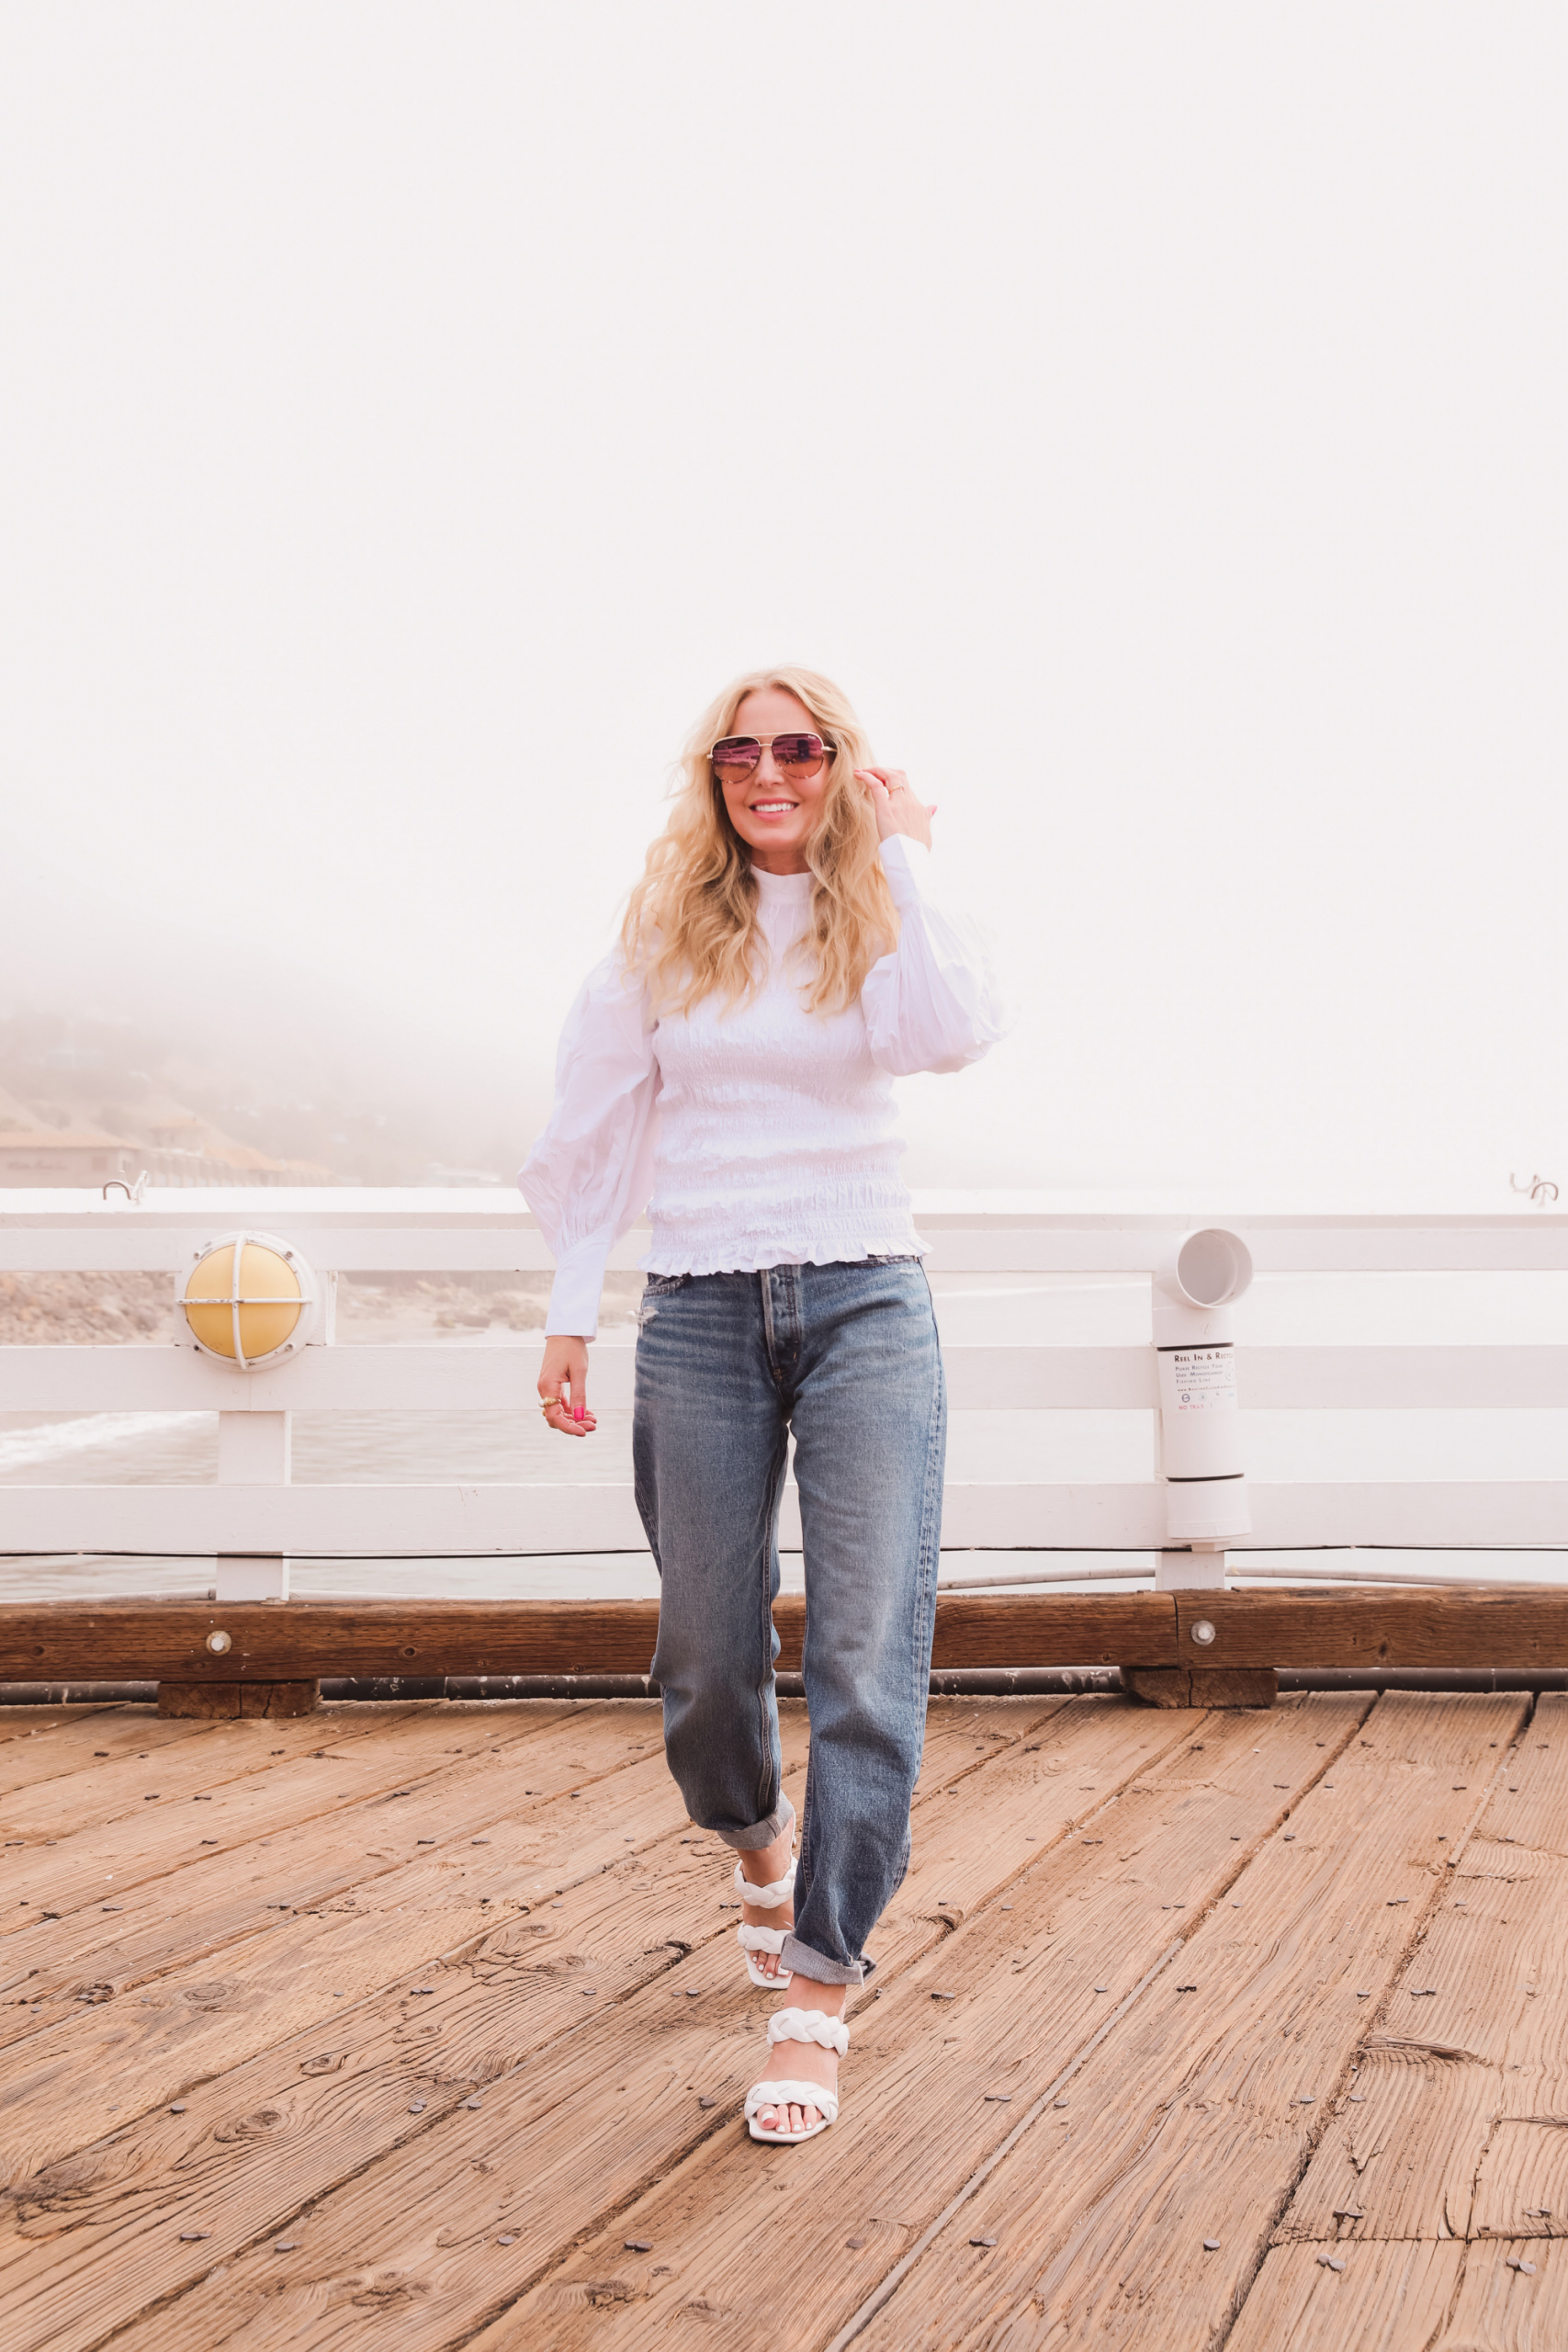 baggy jeans, how to wear baggy jeans, baggy jeans over 40, ganni puff sleeve top, moussy baggy jeans, express braided sandals, best baggy jeans